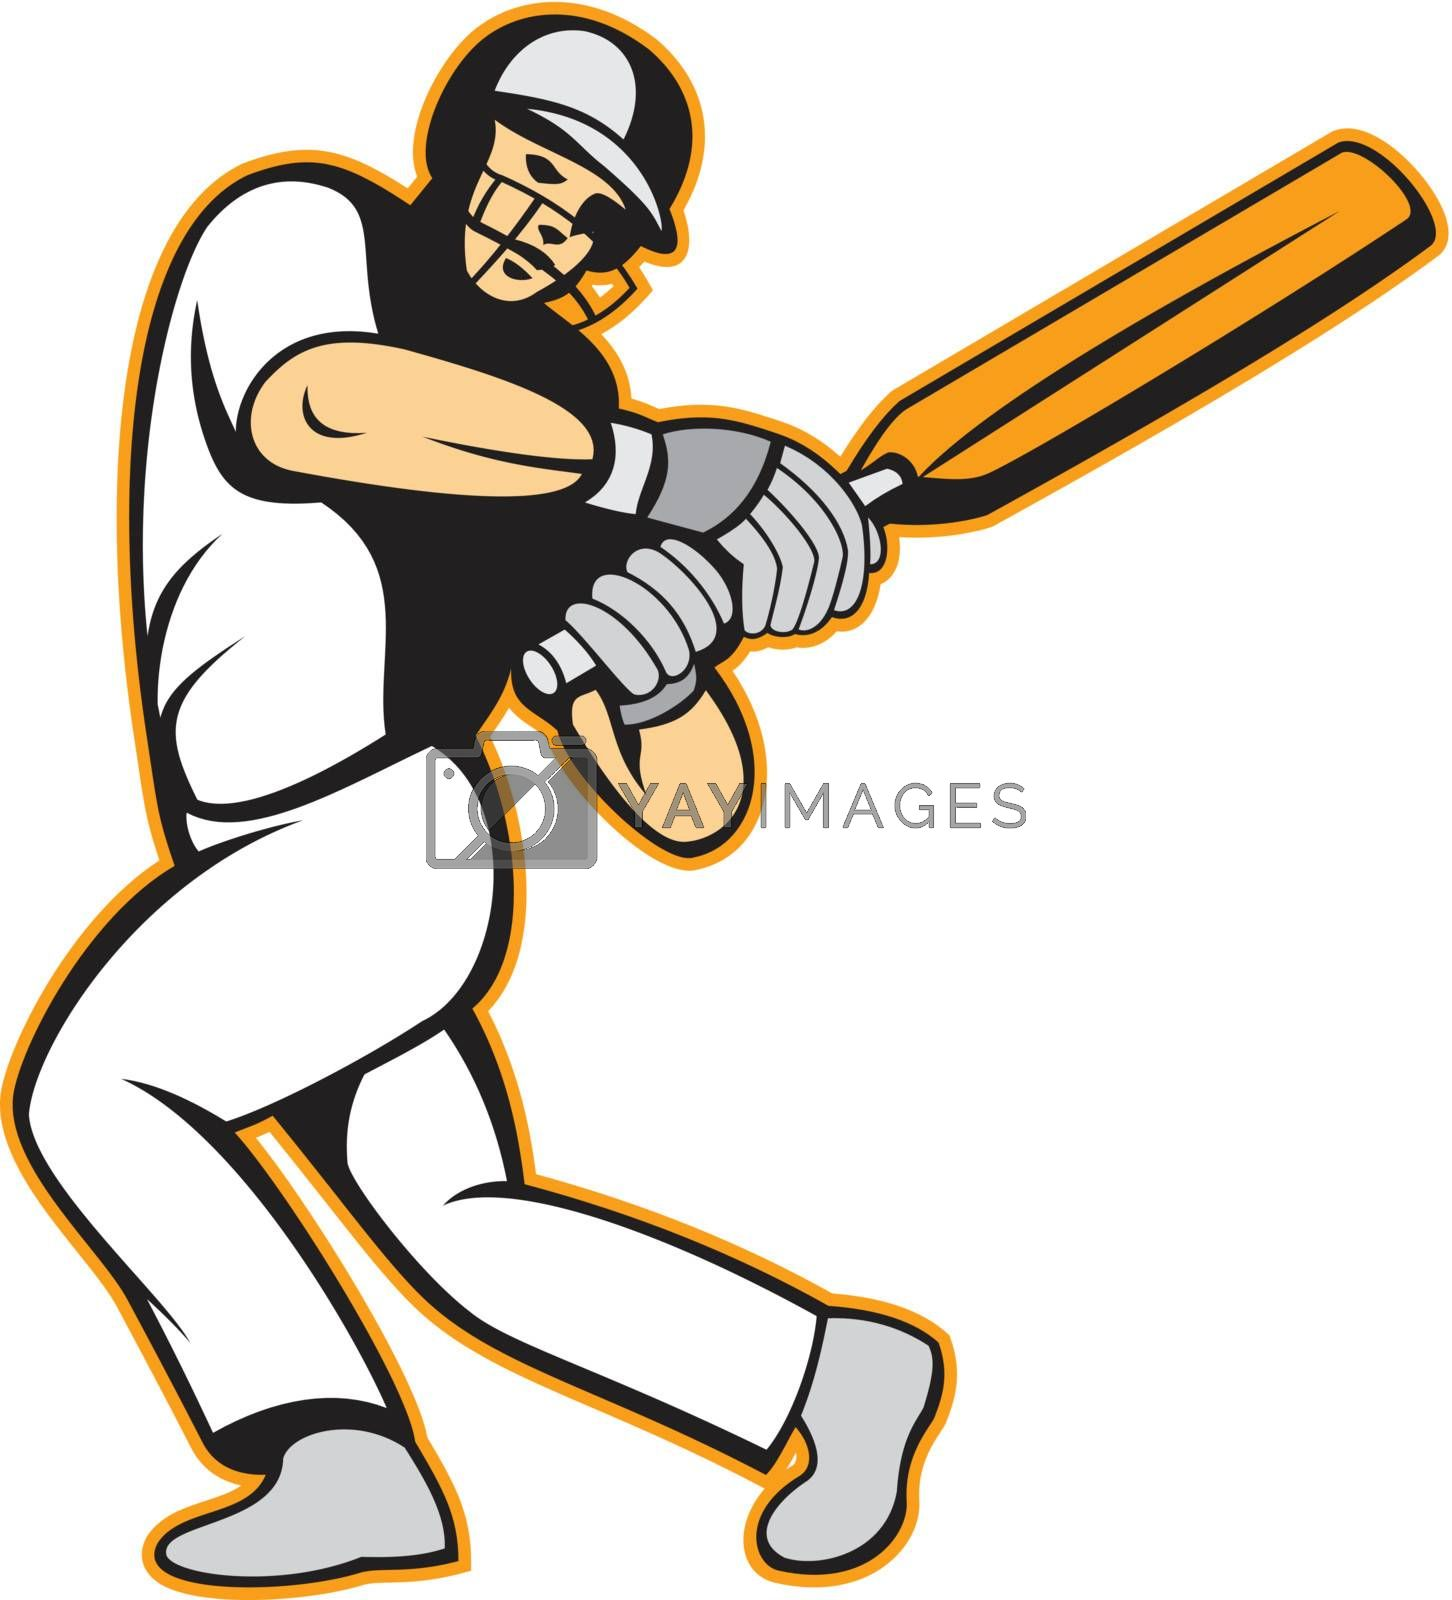 Illustration of a cricket player batsman with bat batting in background isolated on white.